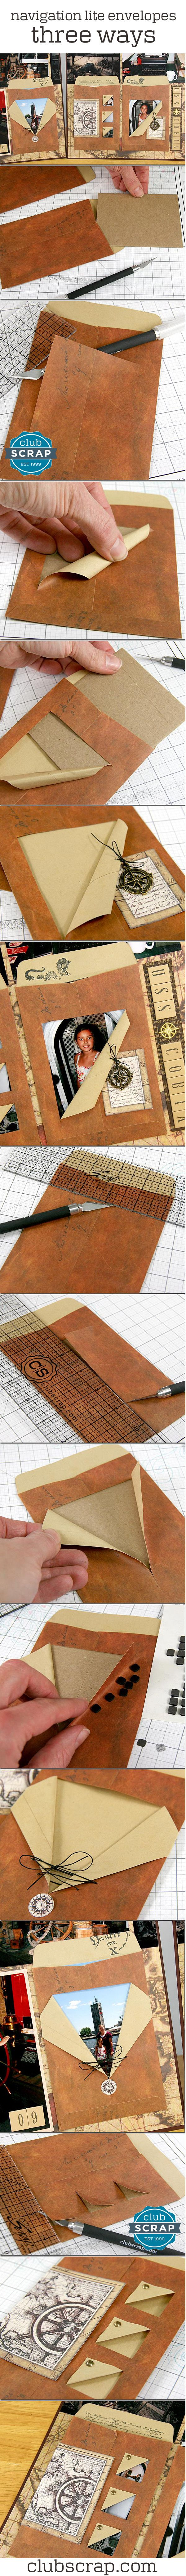 Clever ways to use envelopes on your scrapbook pages. Great for hidden journaling or extra photos! | Navigation Lite Vintage Envelopes - Club Scrap